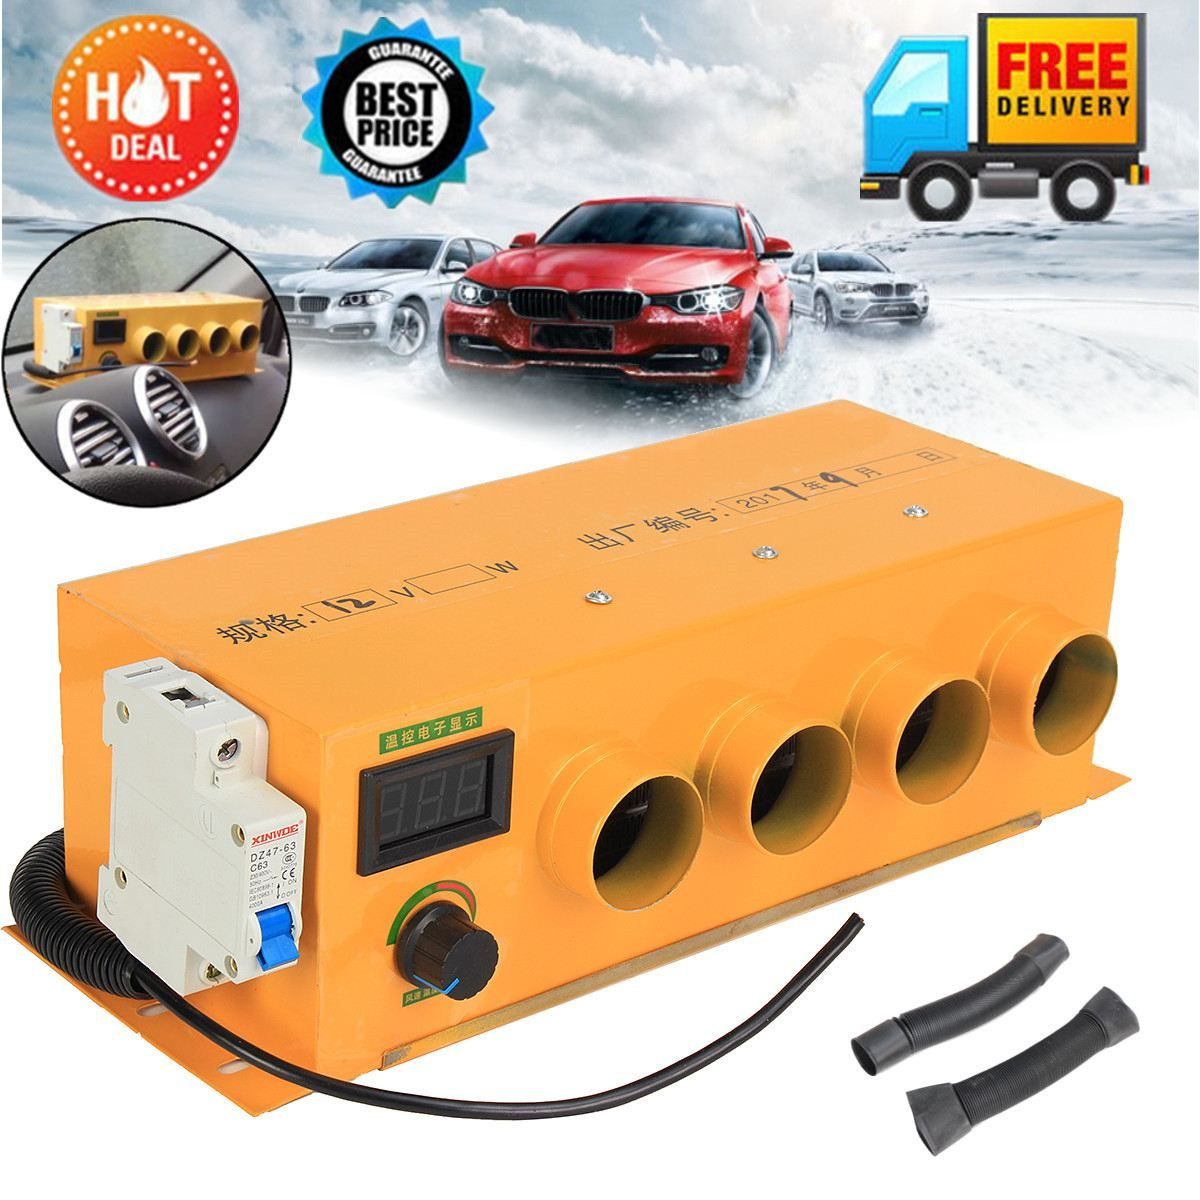 DC 12V/2000W Four Holes Car Heater Warmer Fans Protect Window Defroster Demister